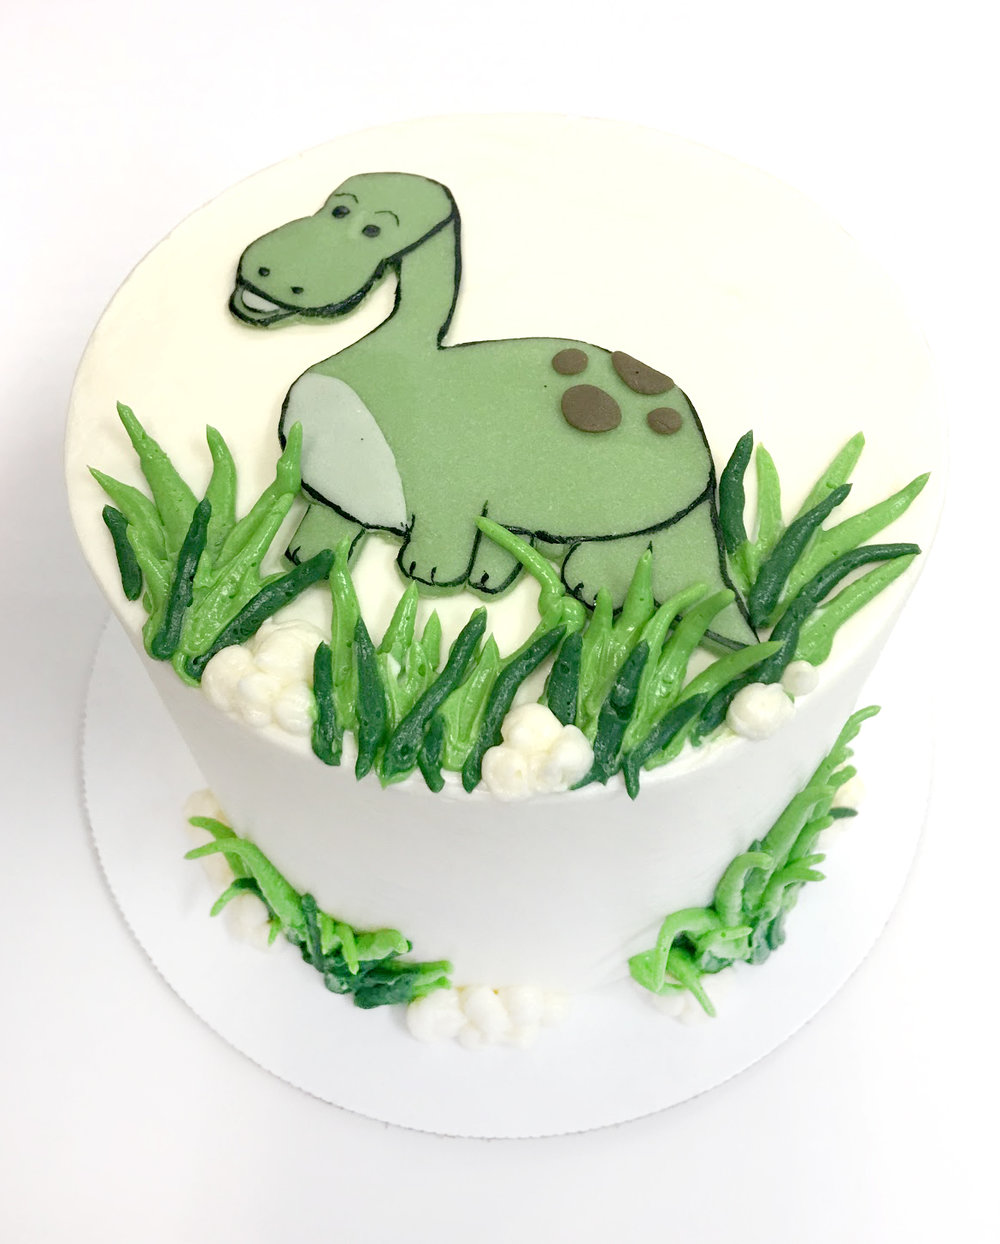 Dinosaur buttercream drawing.jpg